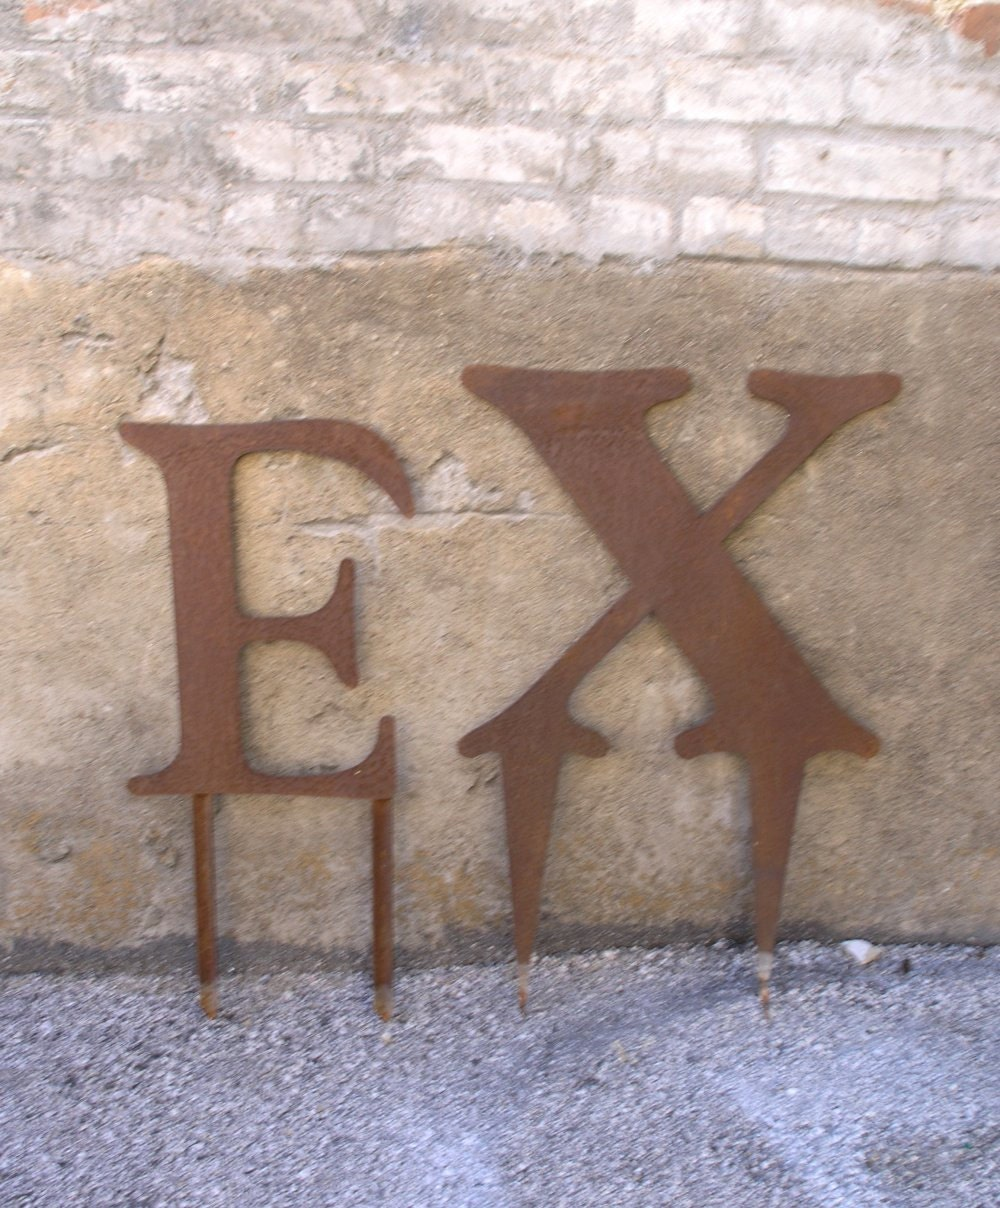 outdoor garden stake large metal letter x by industrialhabitat With large outdoor metal letters